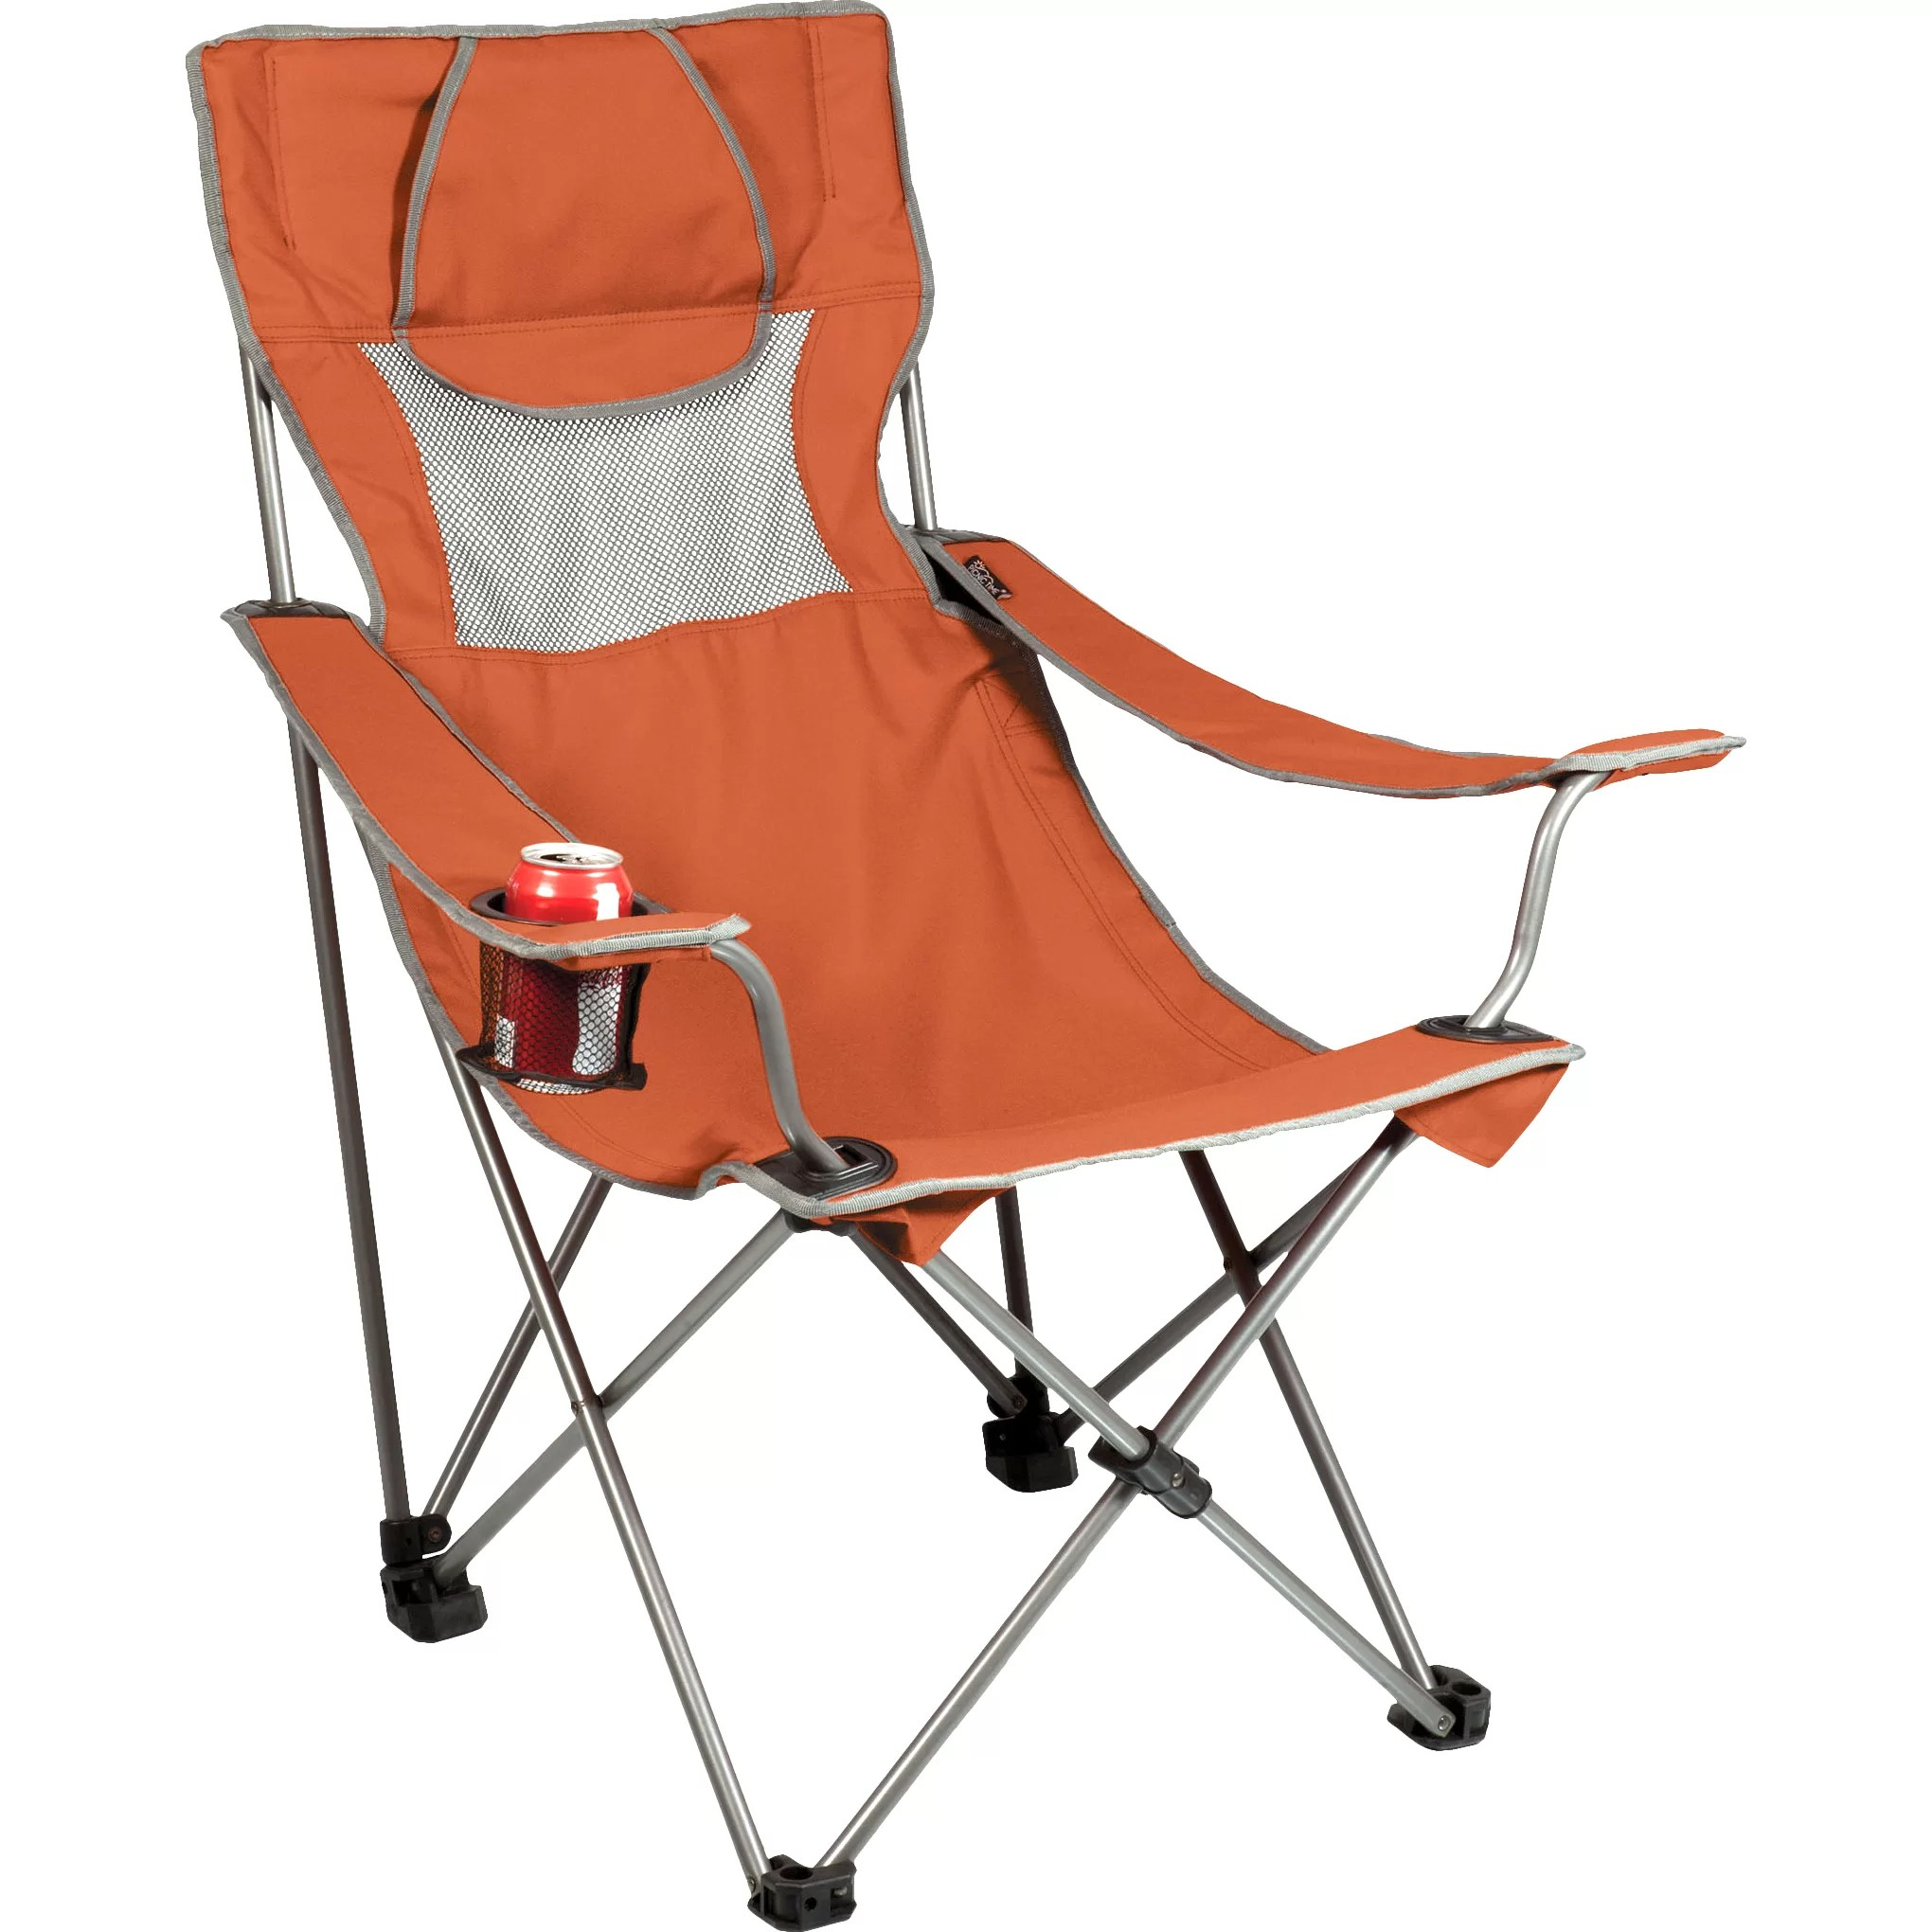 picnic time chairs cheap chair cushions campsite camp and reviews wayfair ca